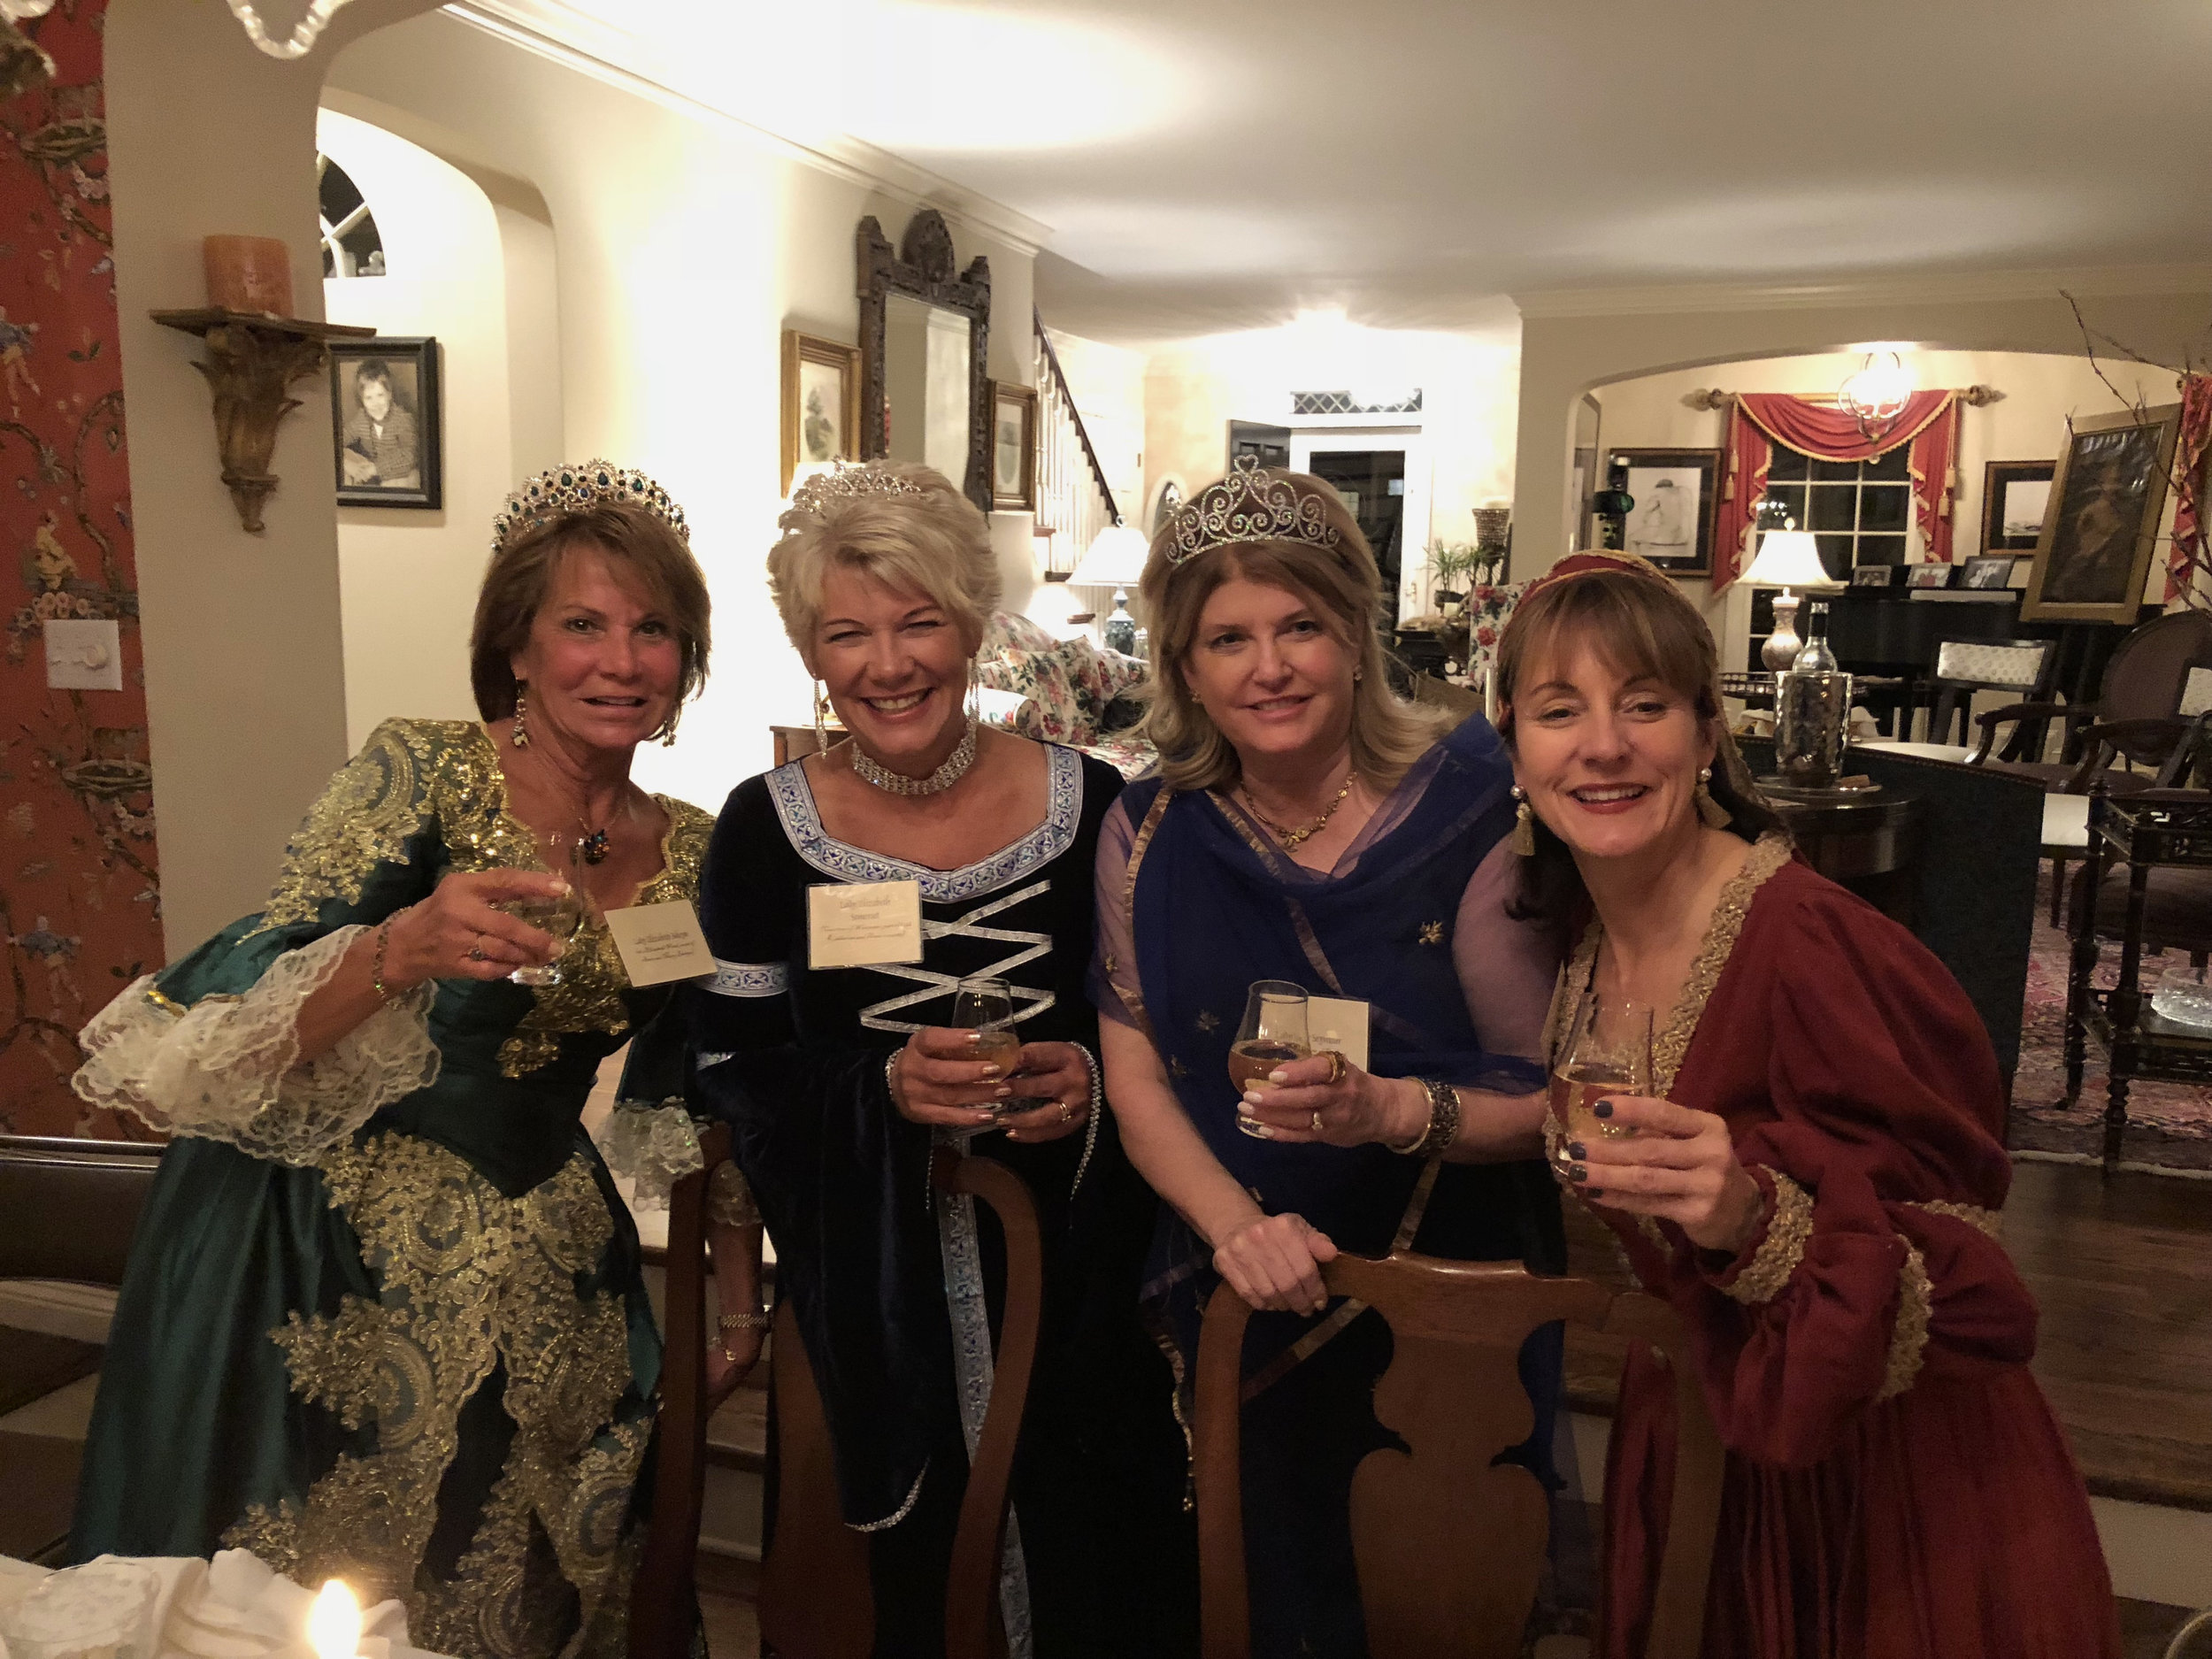 teri_medium_Laura_W3BookClub_OtherBoleynGirl_spiritedtable_photo22.jpg